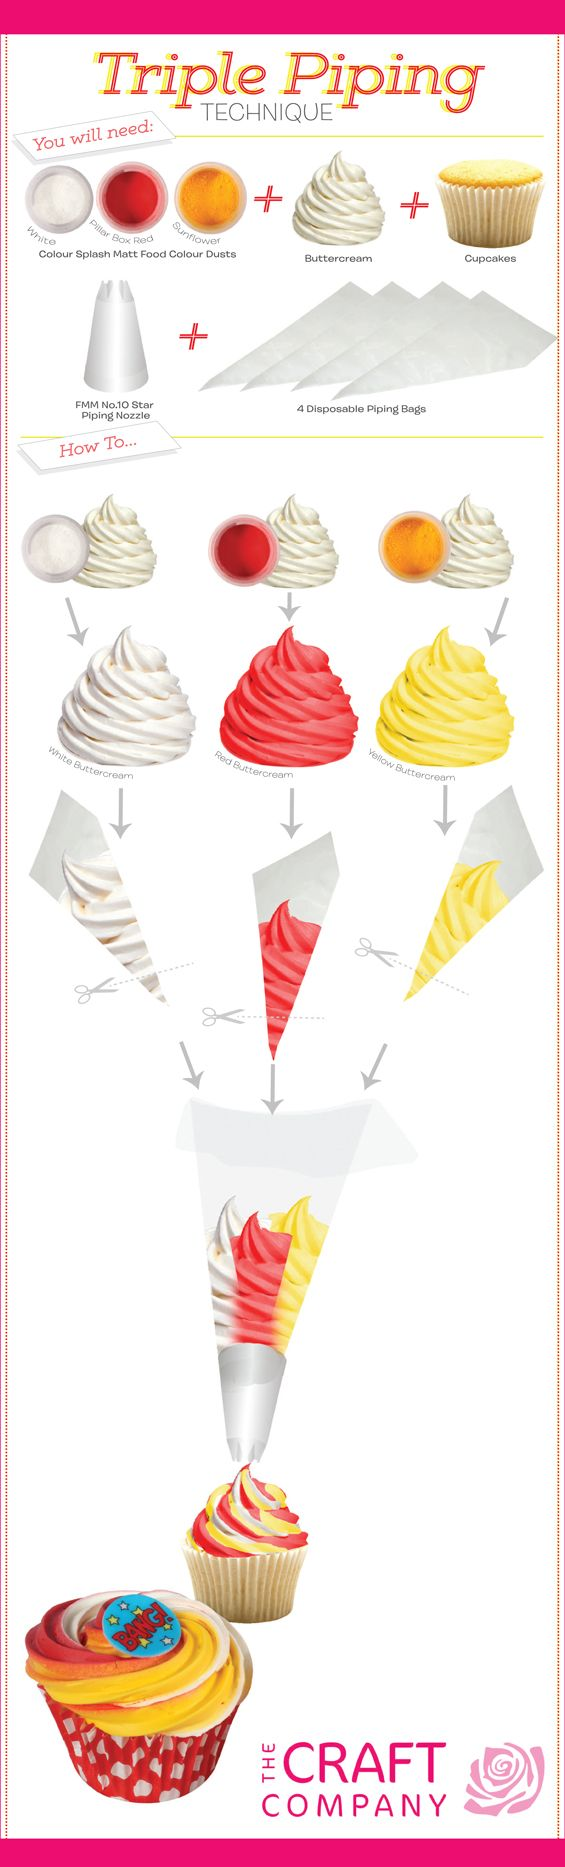 For a multi-coloured buttercream swirl, please follow the pictorial above! For all your cake decorating supplies, please visit craftcompany.co.uk